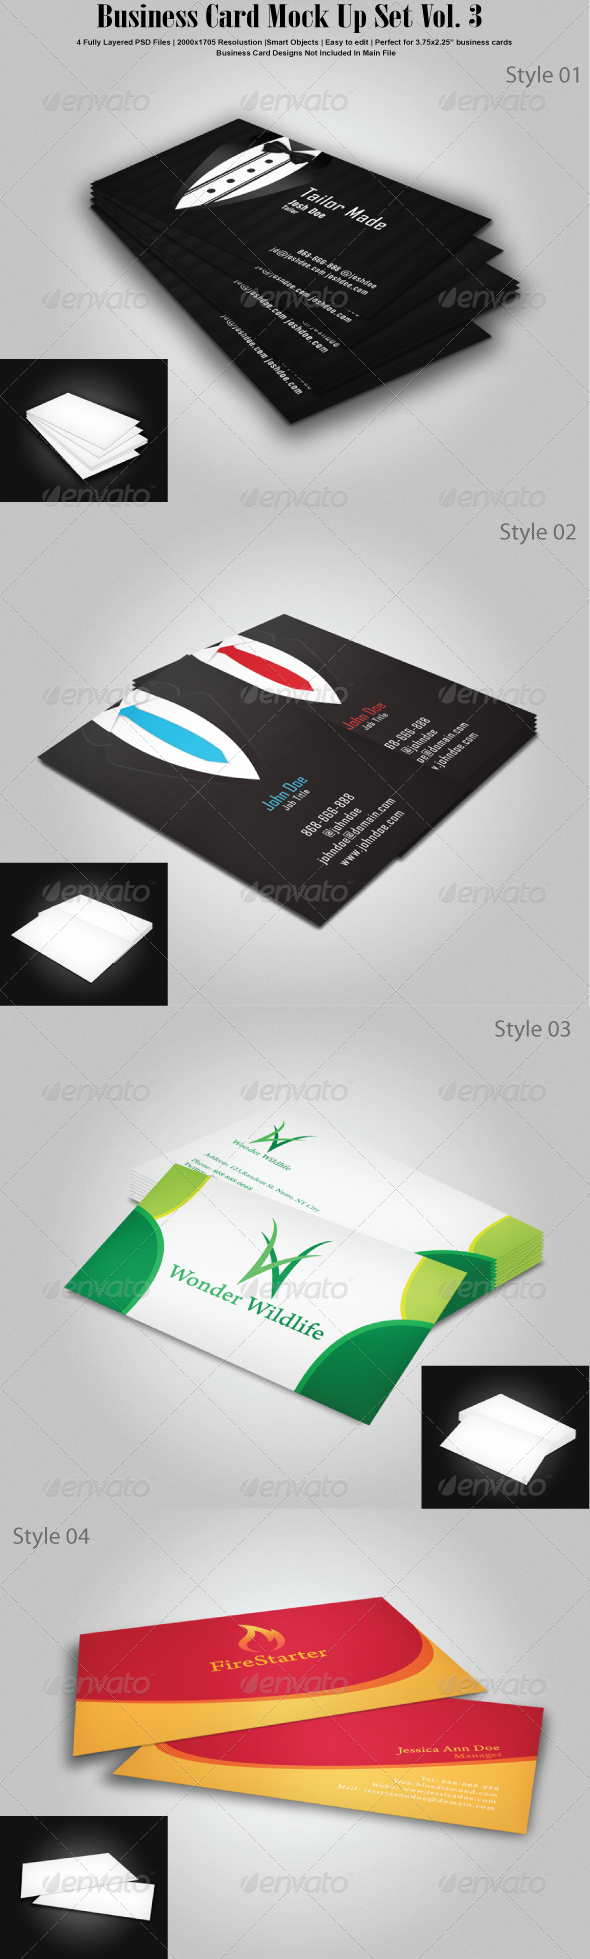 GraphicRiver Business Card Mock Up Set Vol 3 6812784